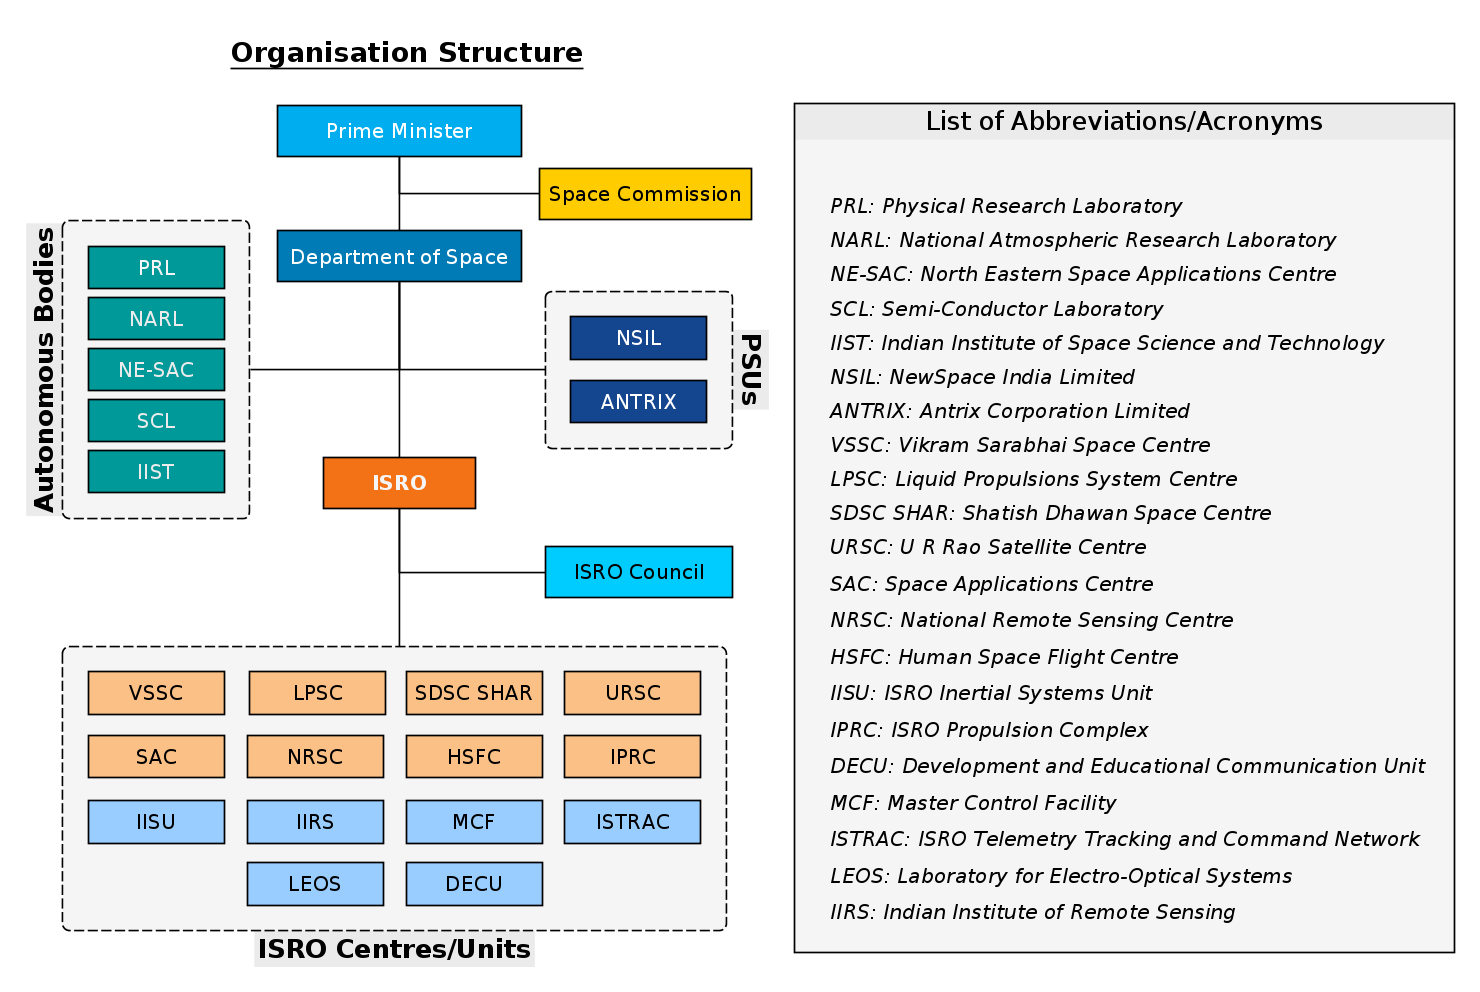 Organization chart showing structure of the Department of Space.